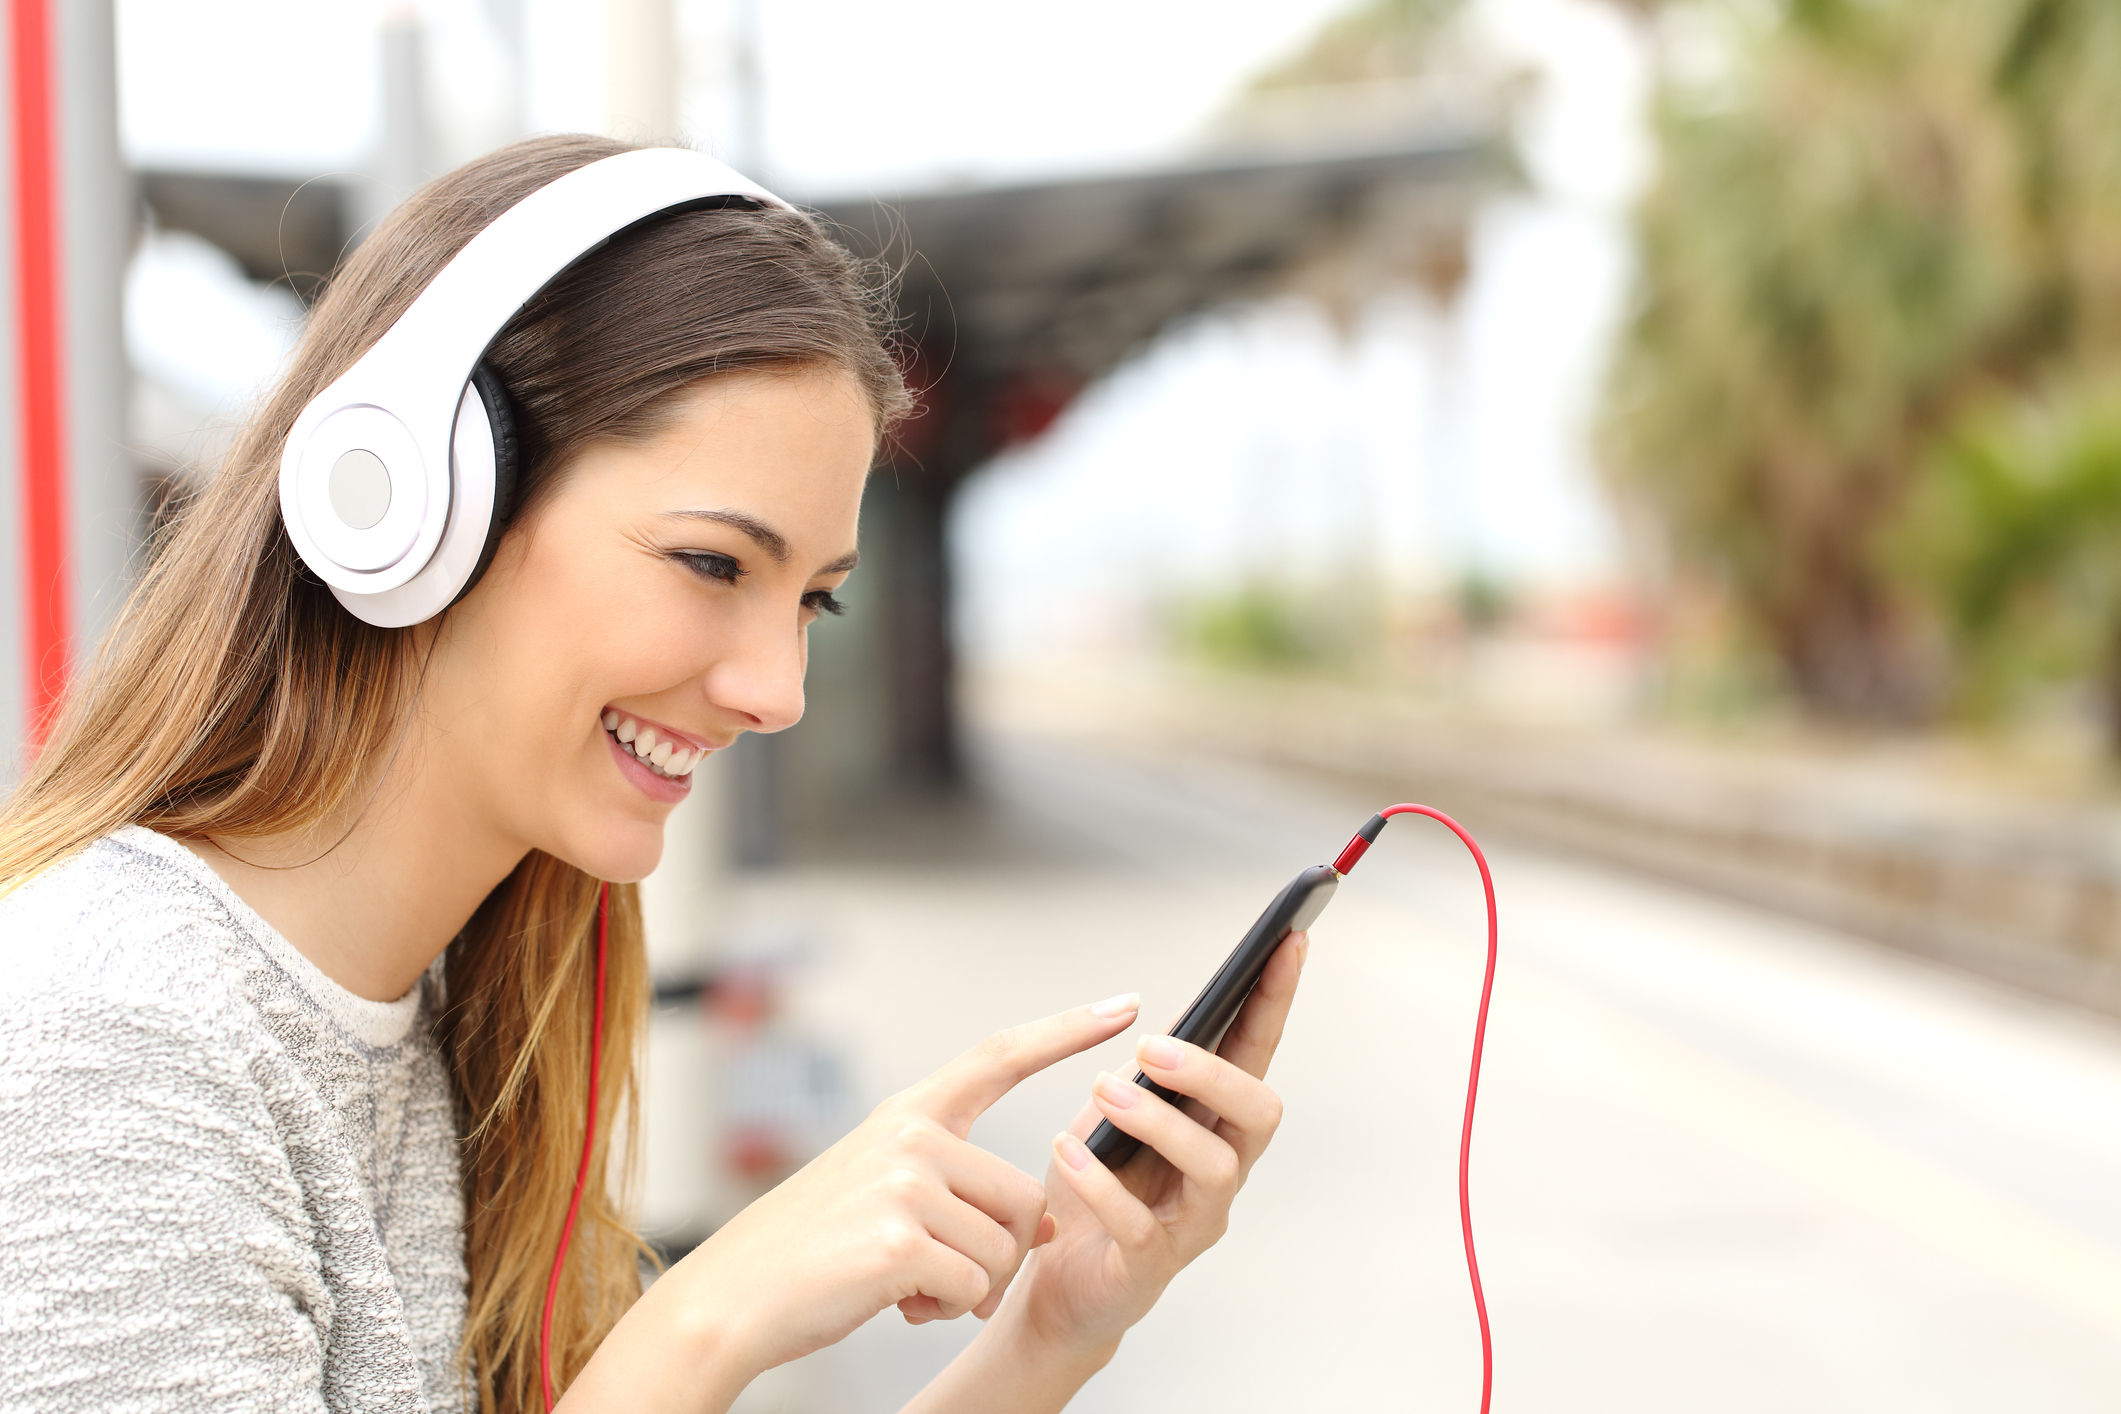 Pandora Introduces Programmatic Audio Advertising with AdsWizz: What to Know